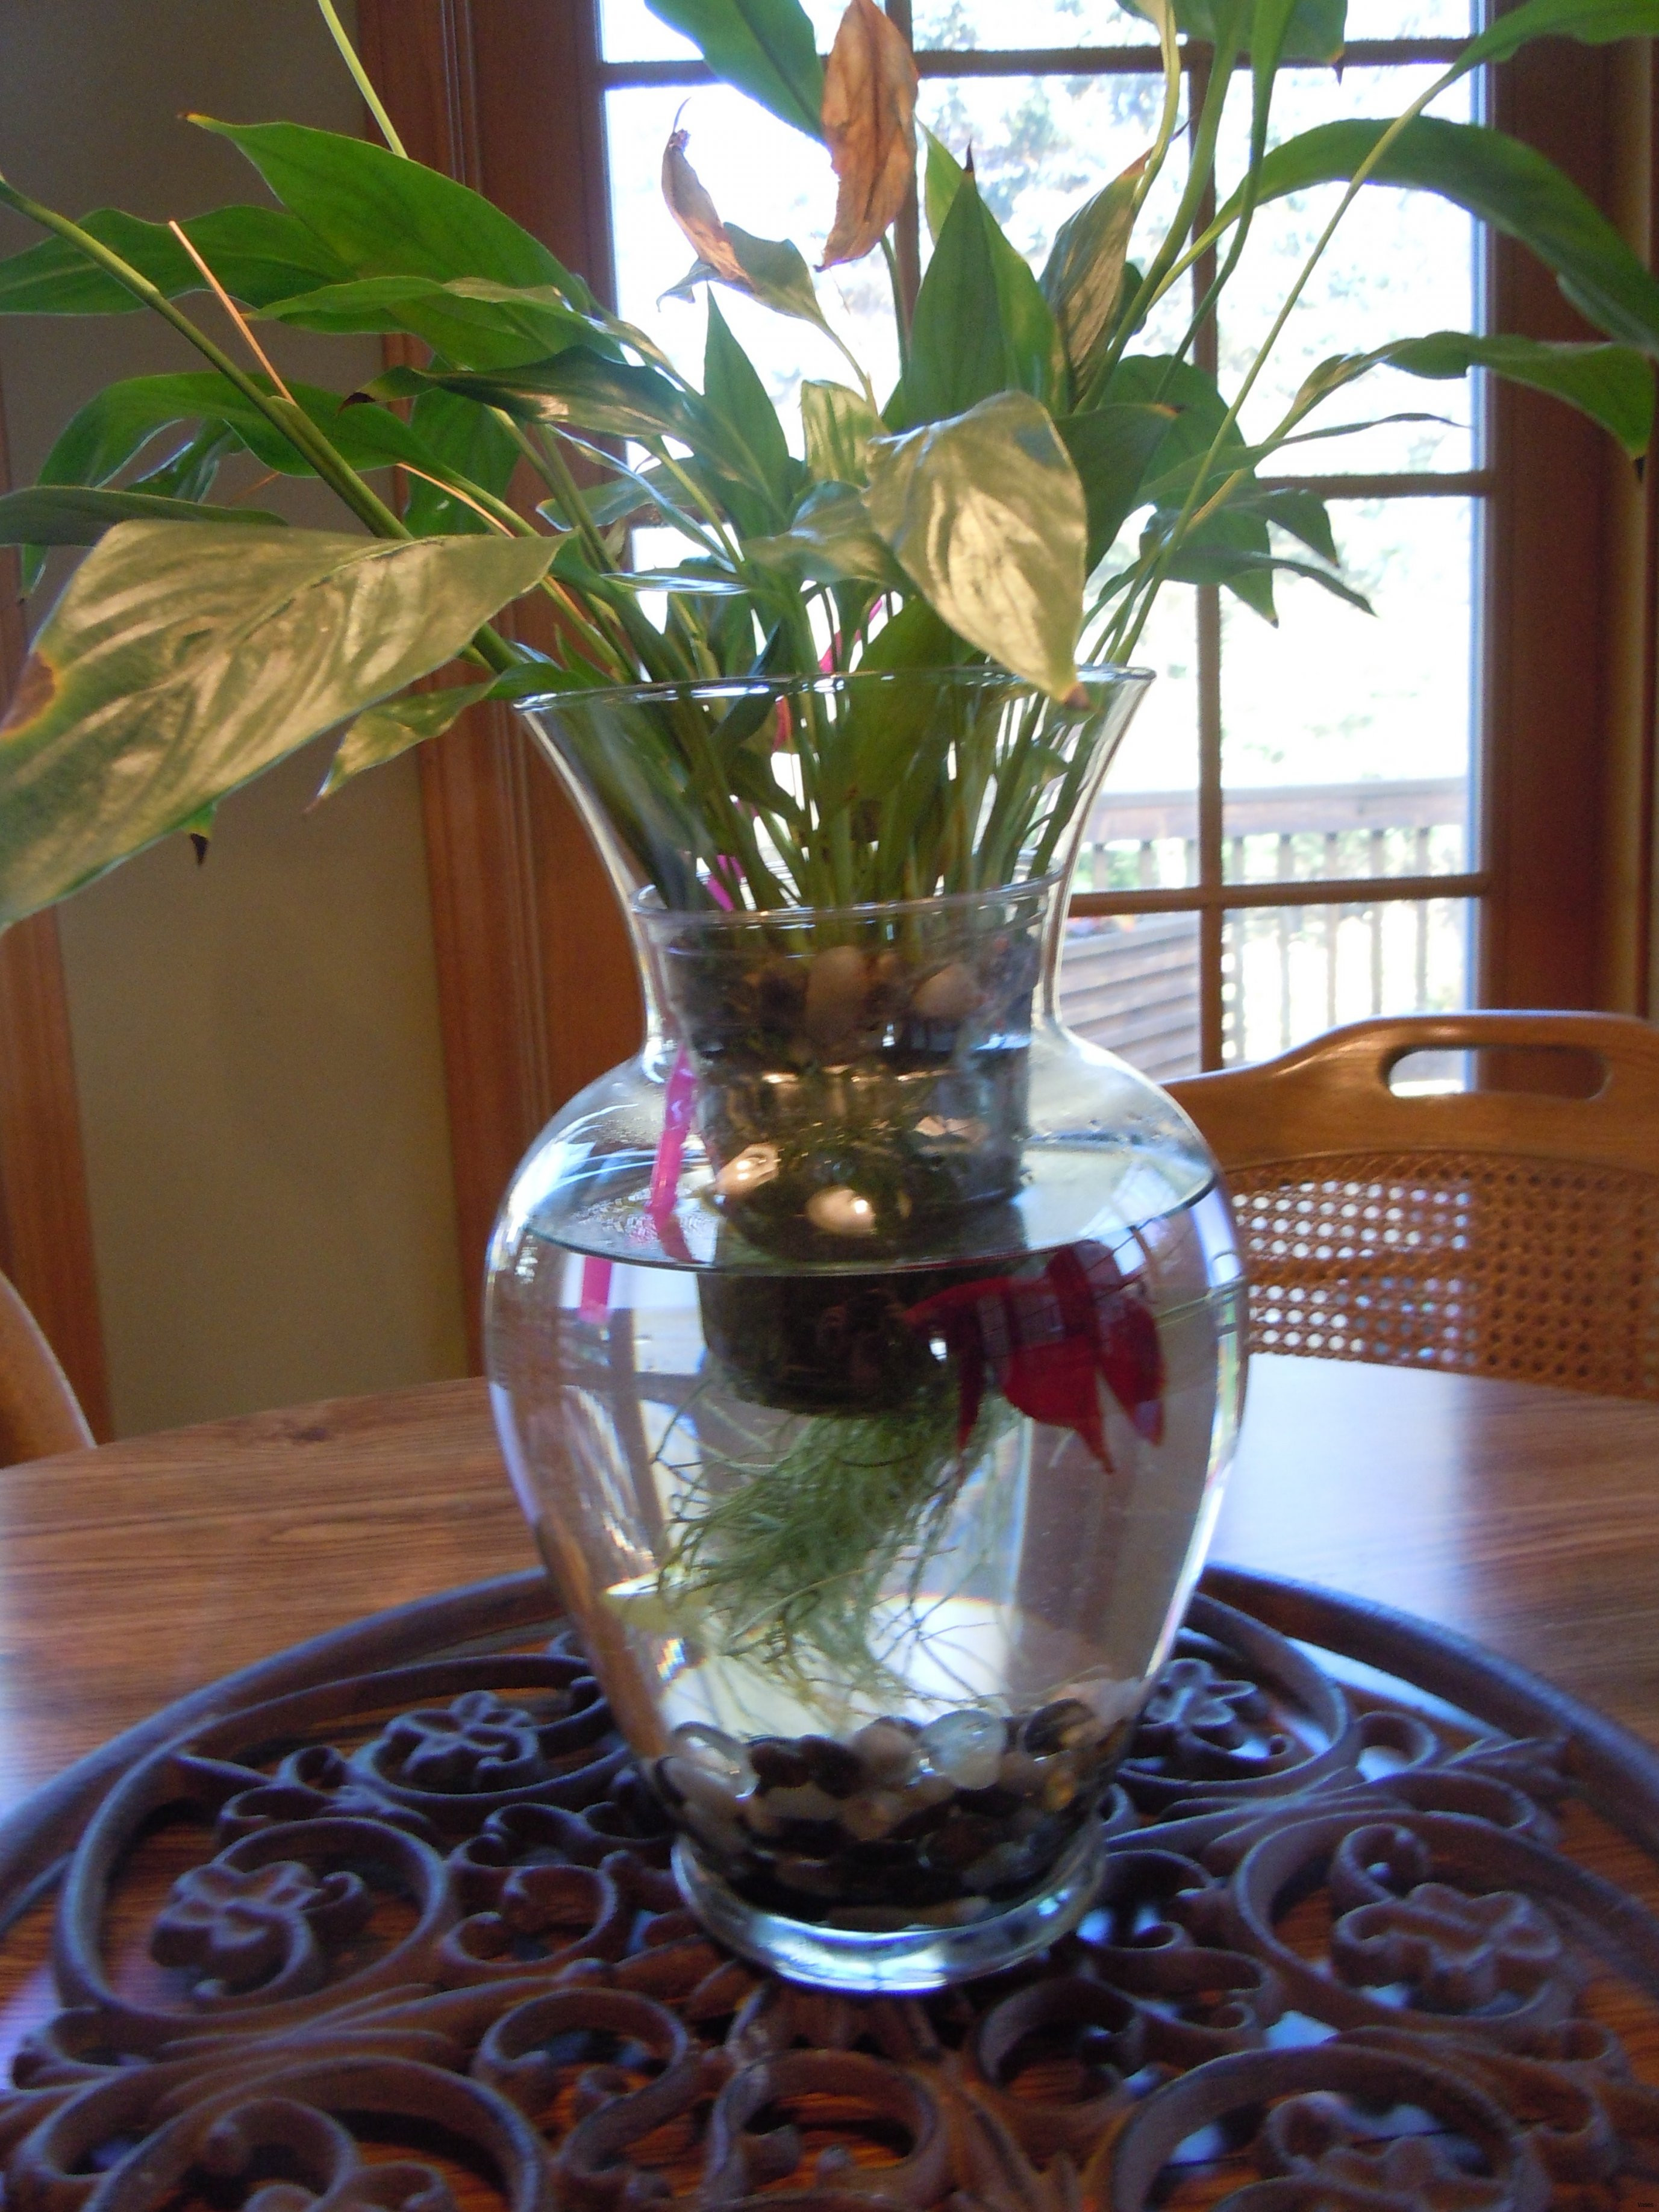 decorative fish bowl vases of plants in glass bowl econhomes com with regard to glass bowl fish tank 50 water nature plant flower glass